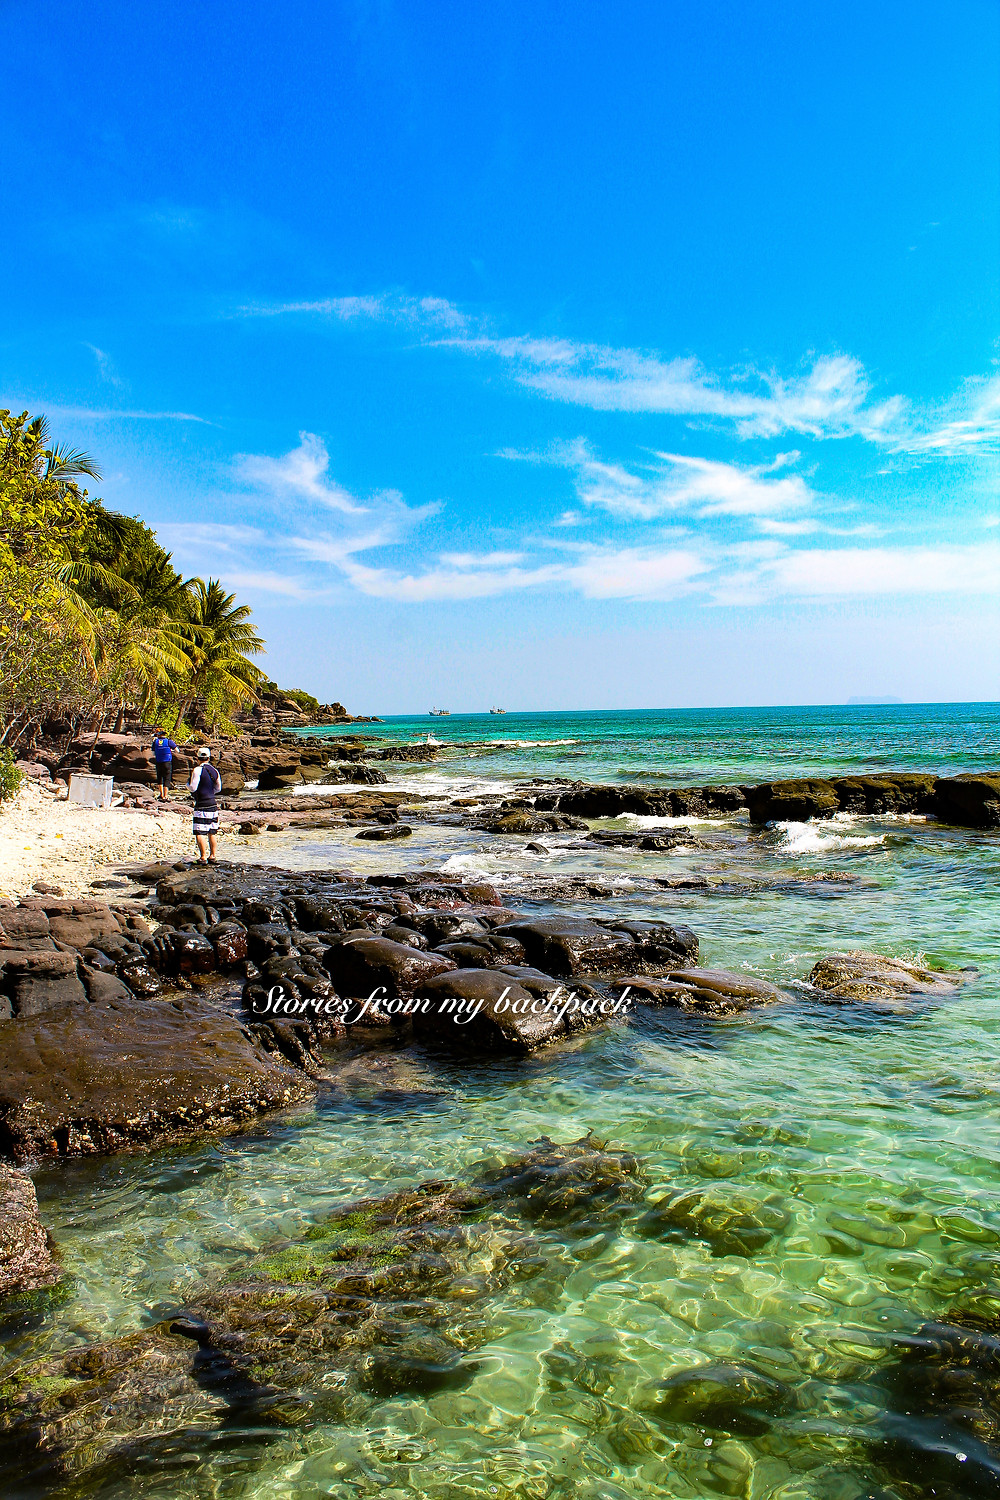 Island tours in phu Quoc, best island tours in phu Quoc, phu Quoc things to do, best beaches in Vietnam, white sand beach in Vietnam